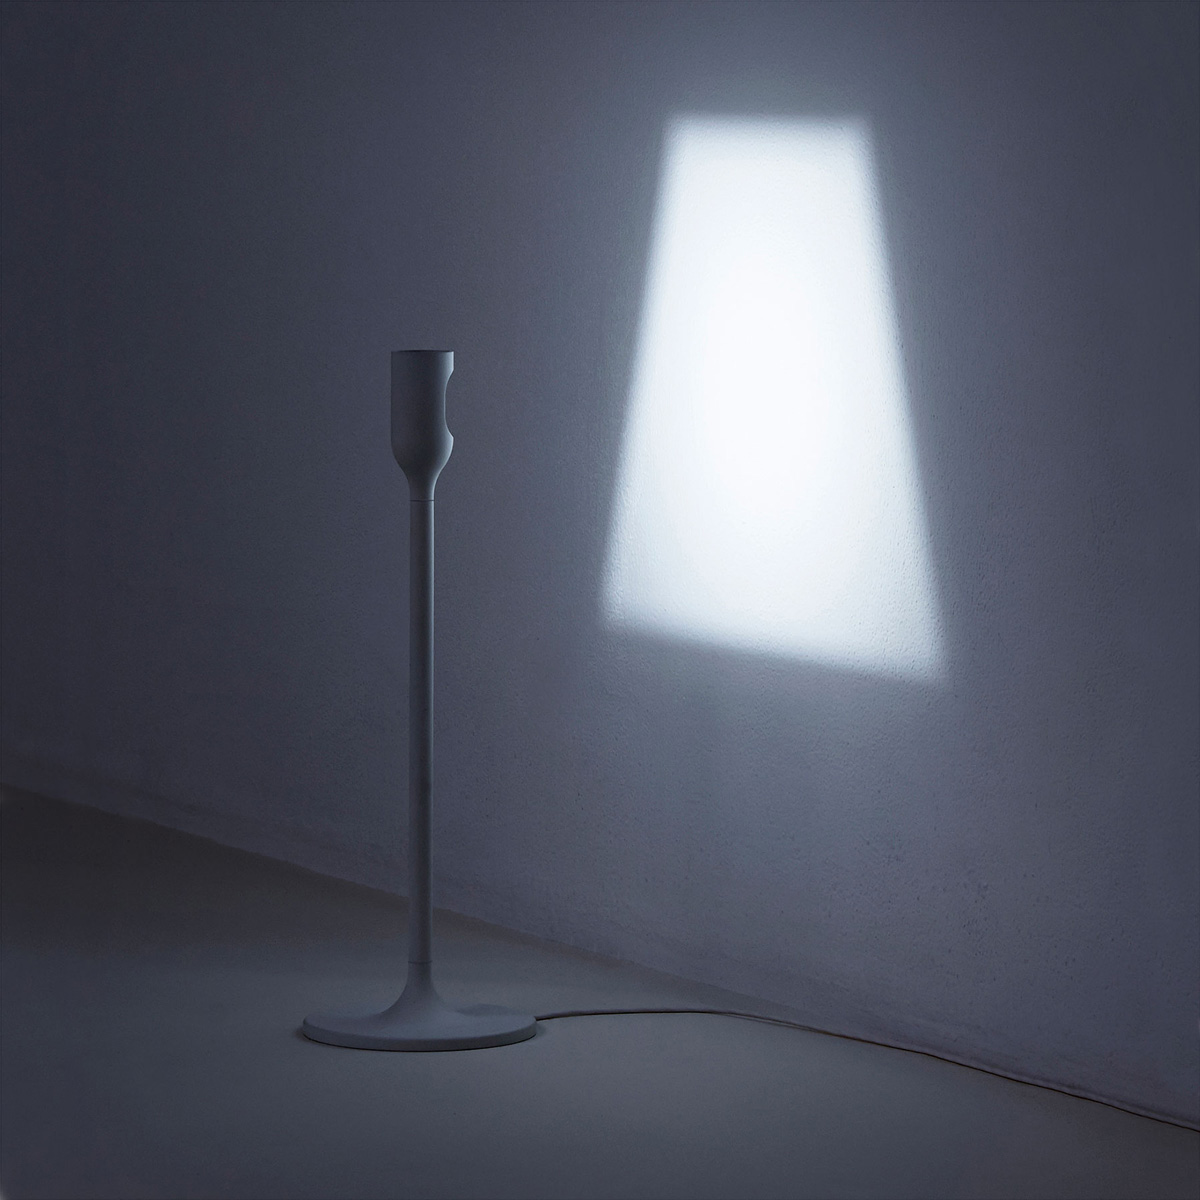 Yoy Light Projects Its Own Lampshade